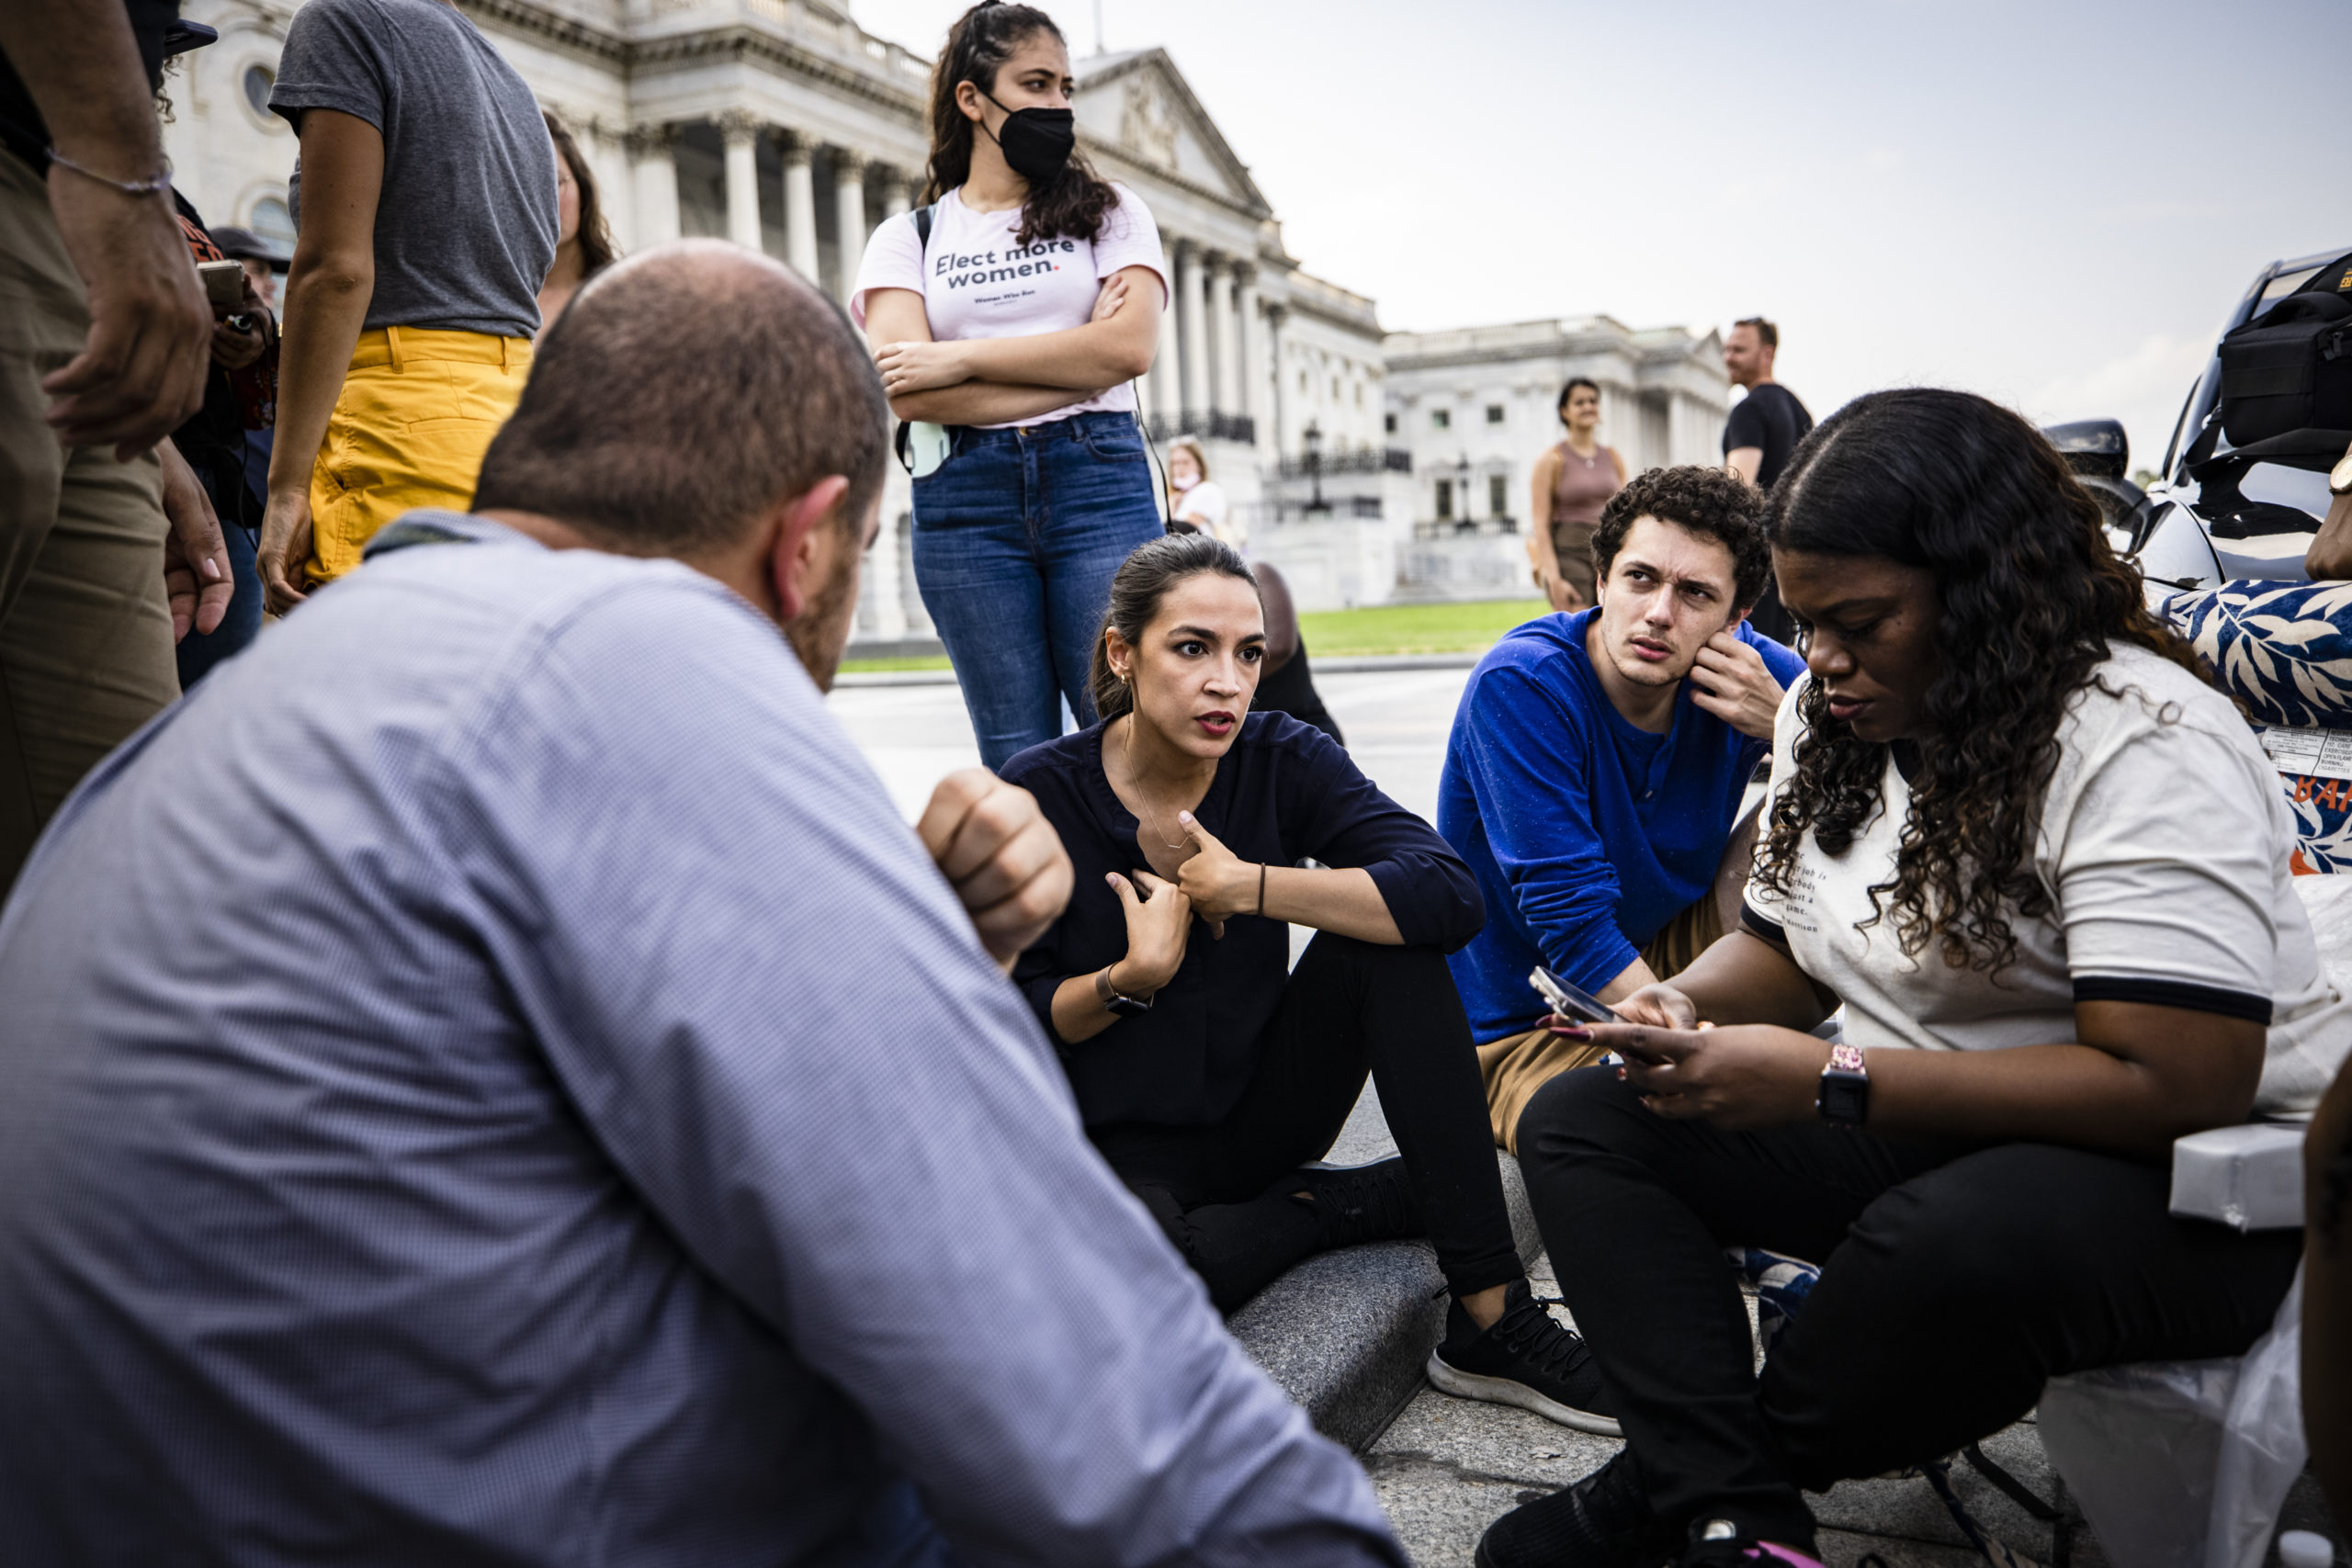 WASHINGTON, DC - AUGUST 01: U.S. Representatives Alexandria Ocasio-Cortez (D-NY) (C) and Cori Bush (D-MO) (R) continue their protest for an extension of the eviction moratorium on the steps to the House of Representatives at the U.S. Capitol Building on August 1, 2021 in Washington, DC. The eviction moratorium, which ended July 31st, helped 2 million people stay in their homes who suffered financial hardships due to the coronavirus (COVID-19) pandemic. Those people are now at risk of losing their homes. (Photo by Samuel Corum/Getty Images)